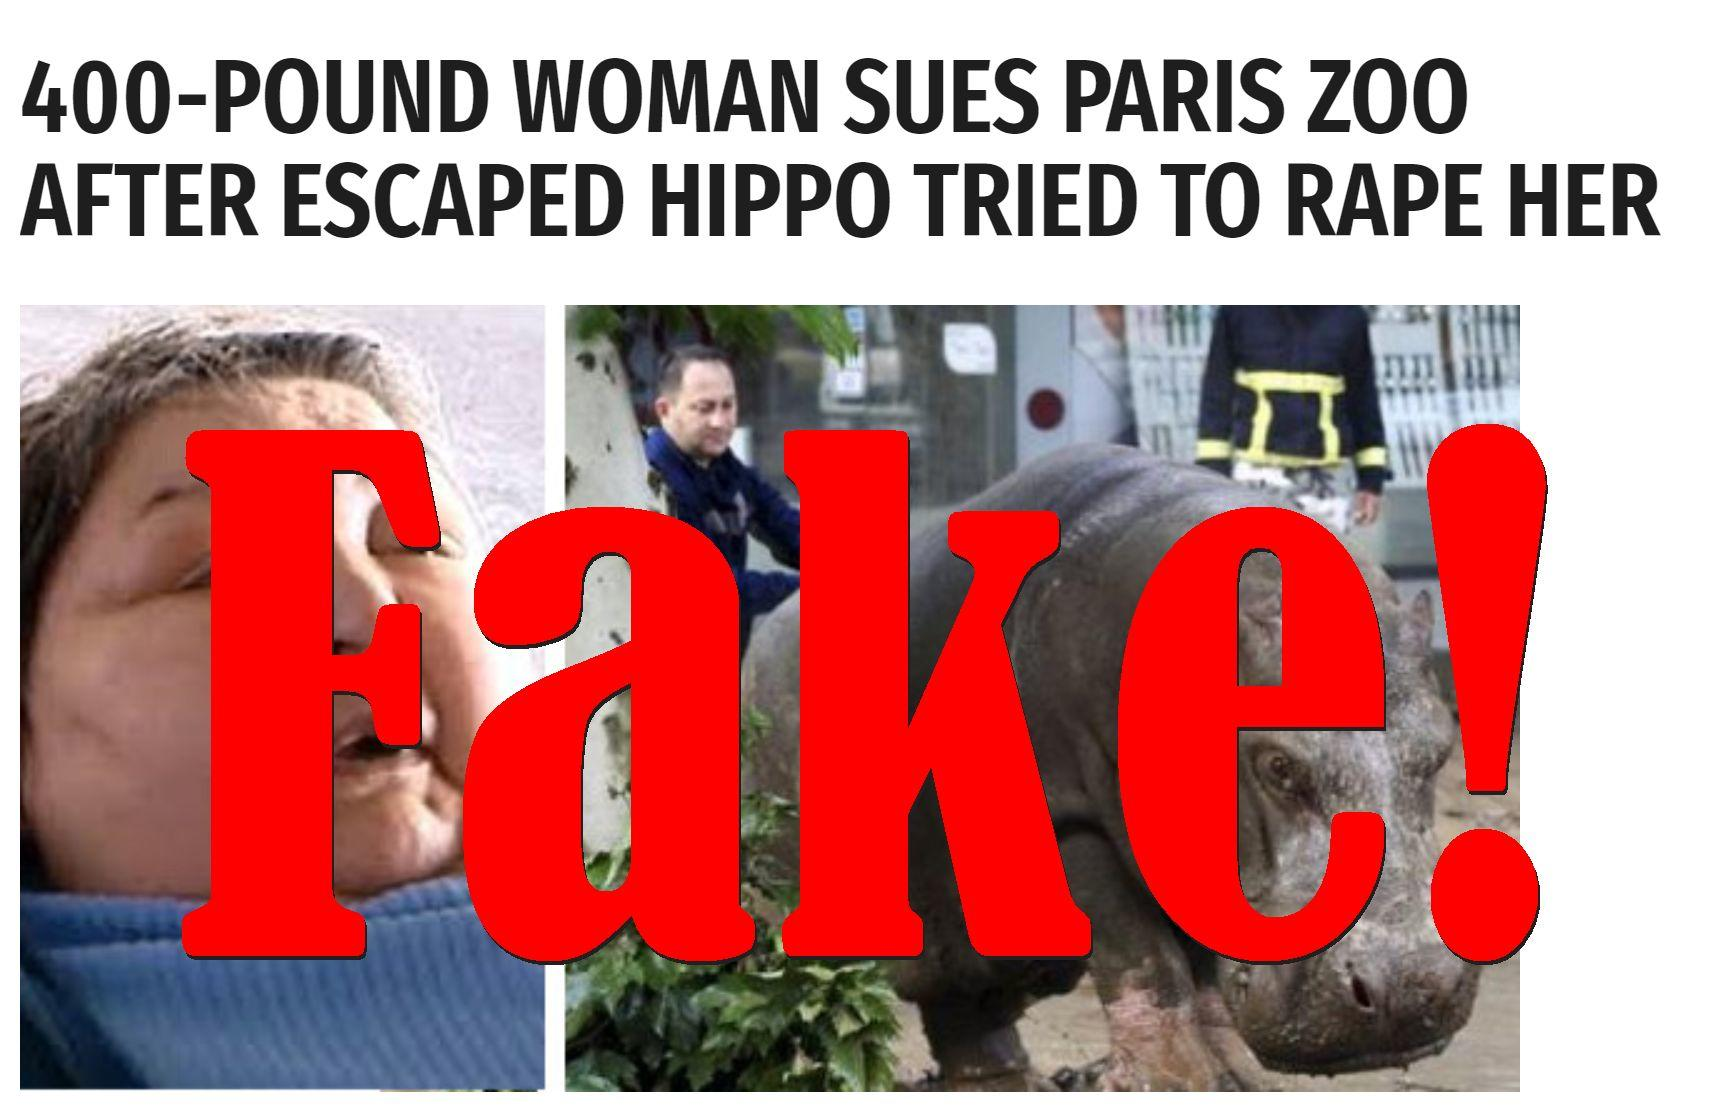 Fake News: 400-pound Woman Did NOT Sue Paris Zoo, Escaped Hippo Did NOT Try to Rape Her